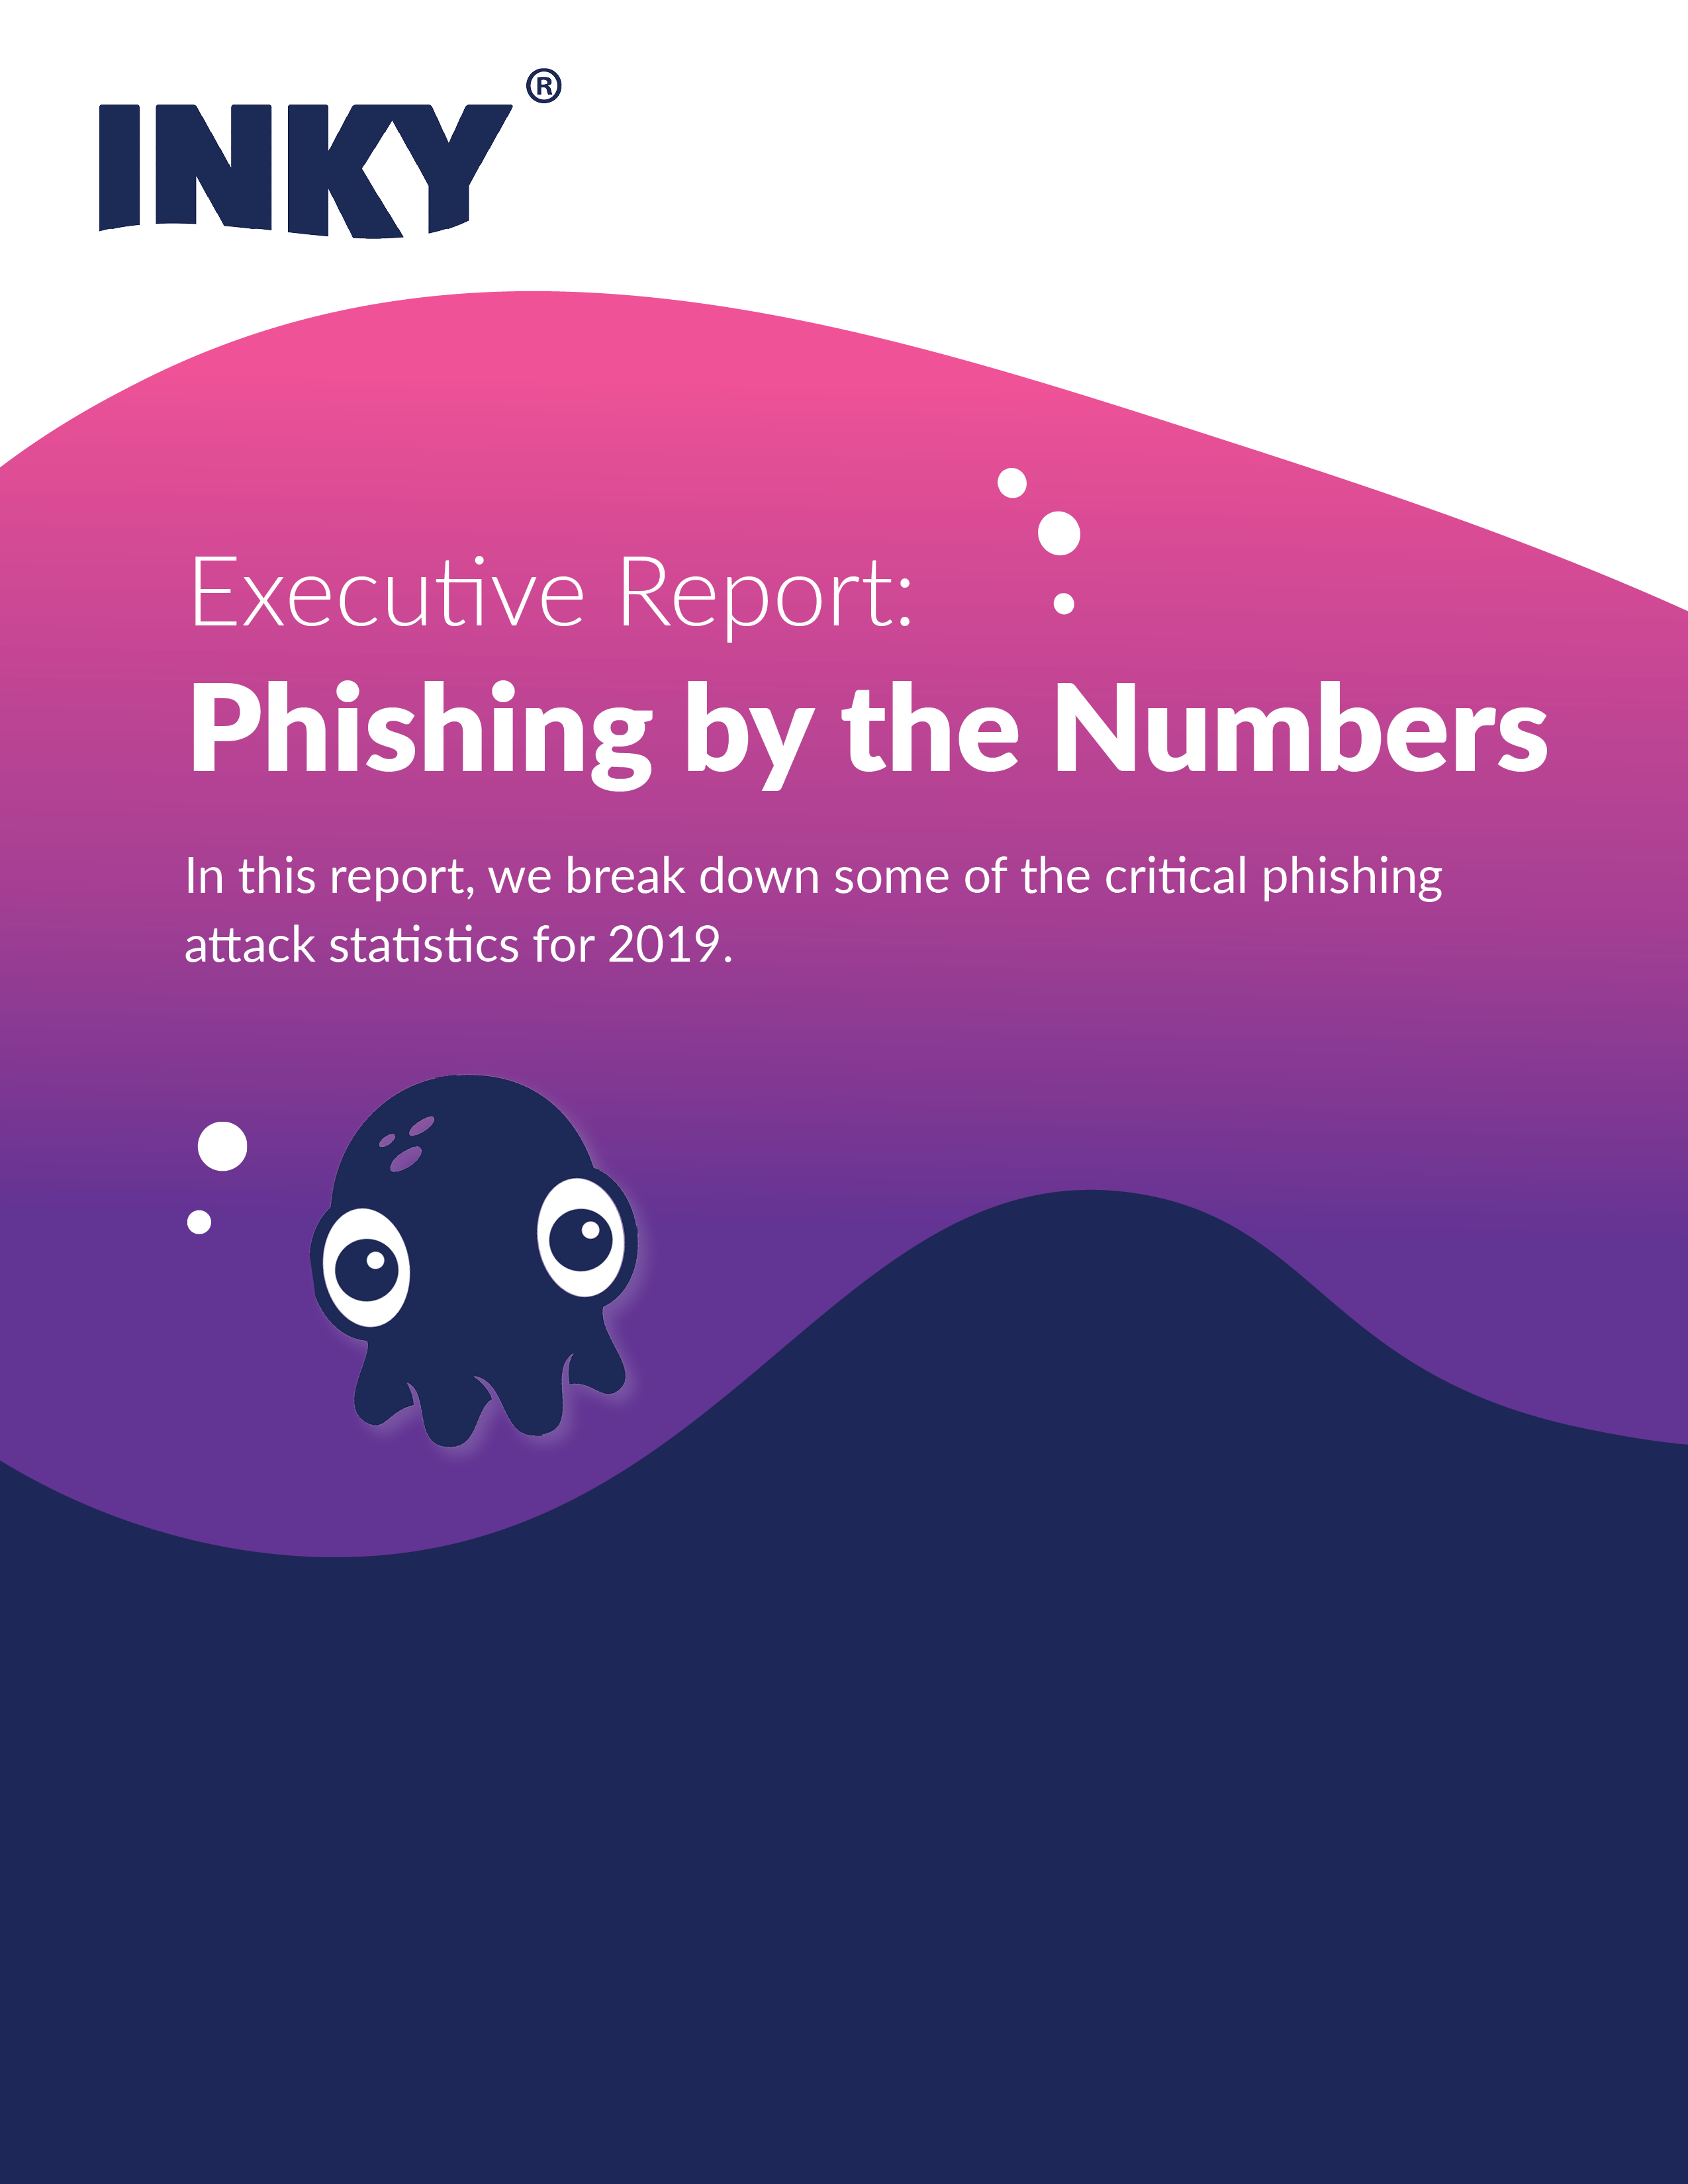 Executive Report- Phishing by the Numbers